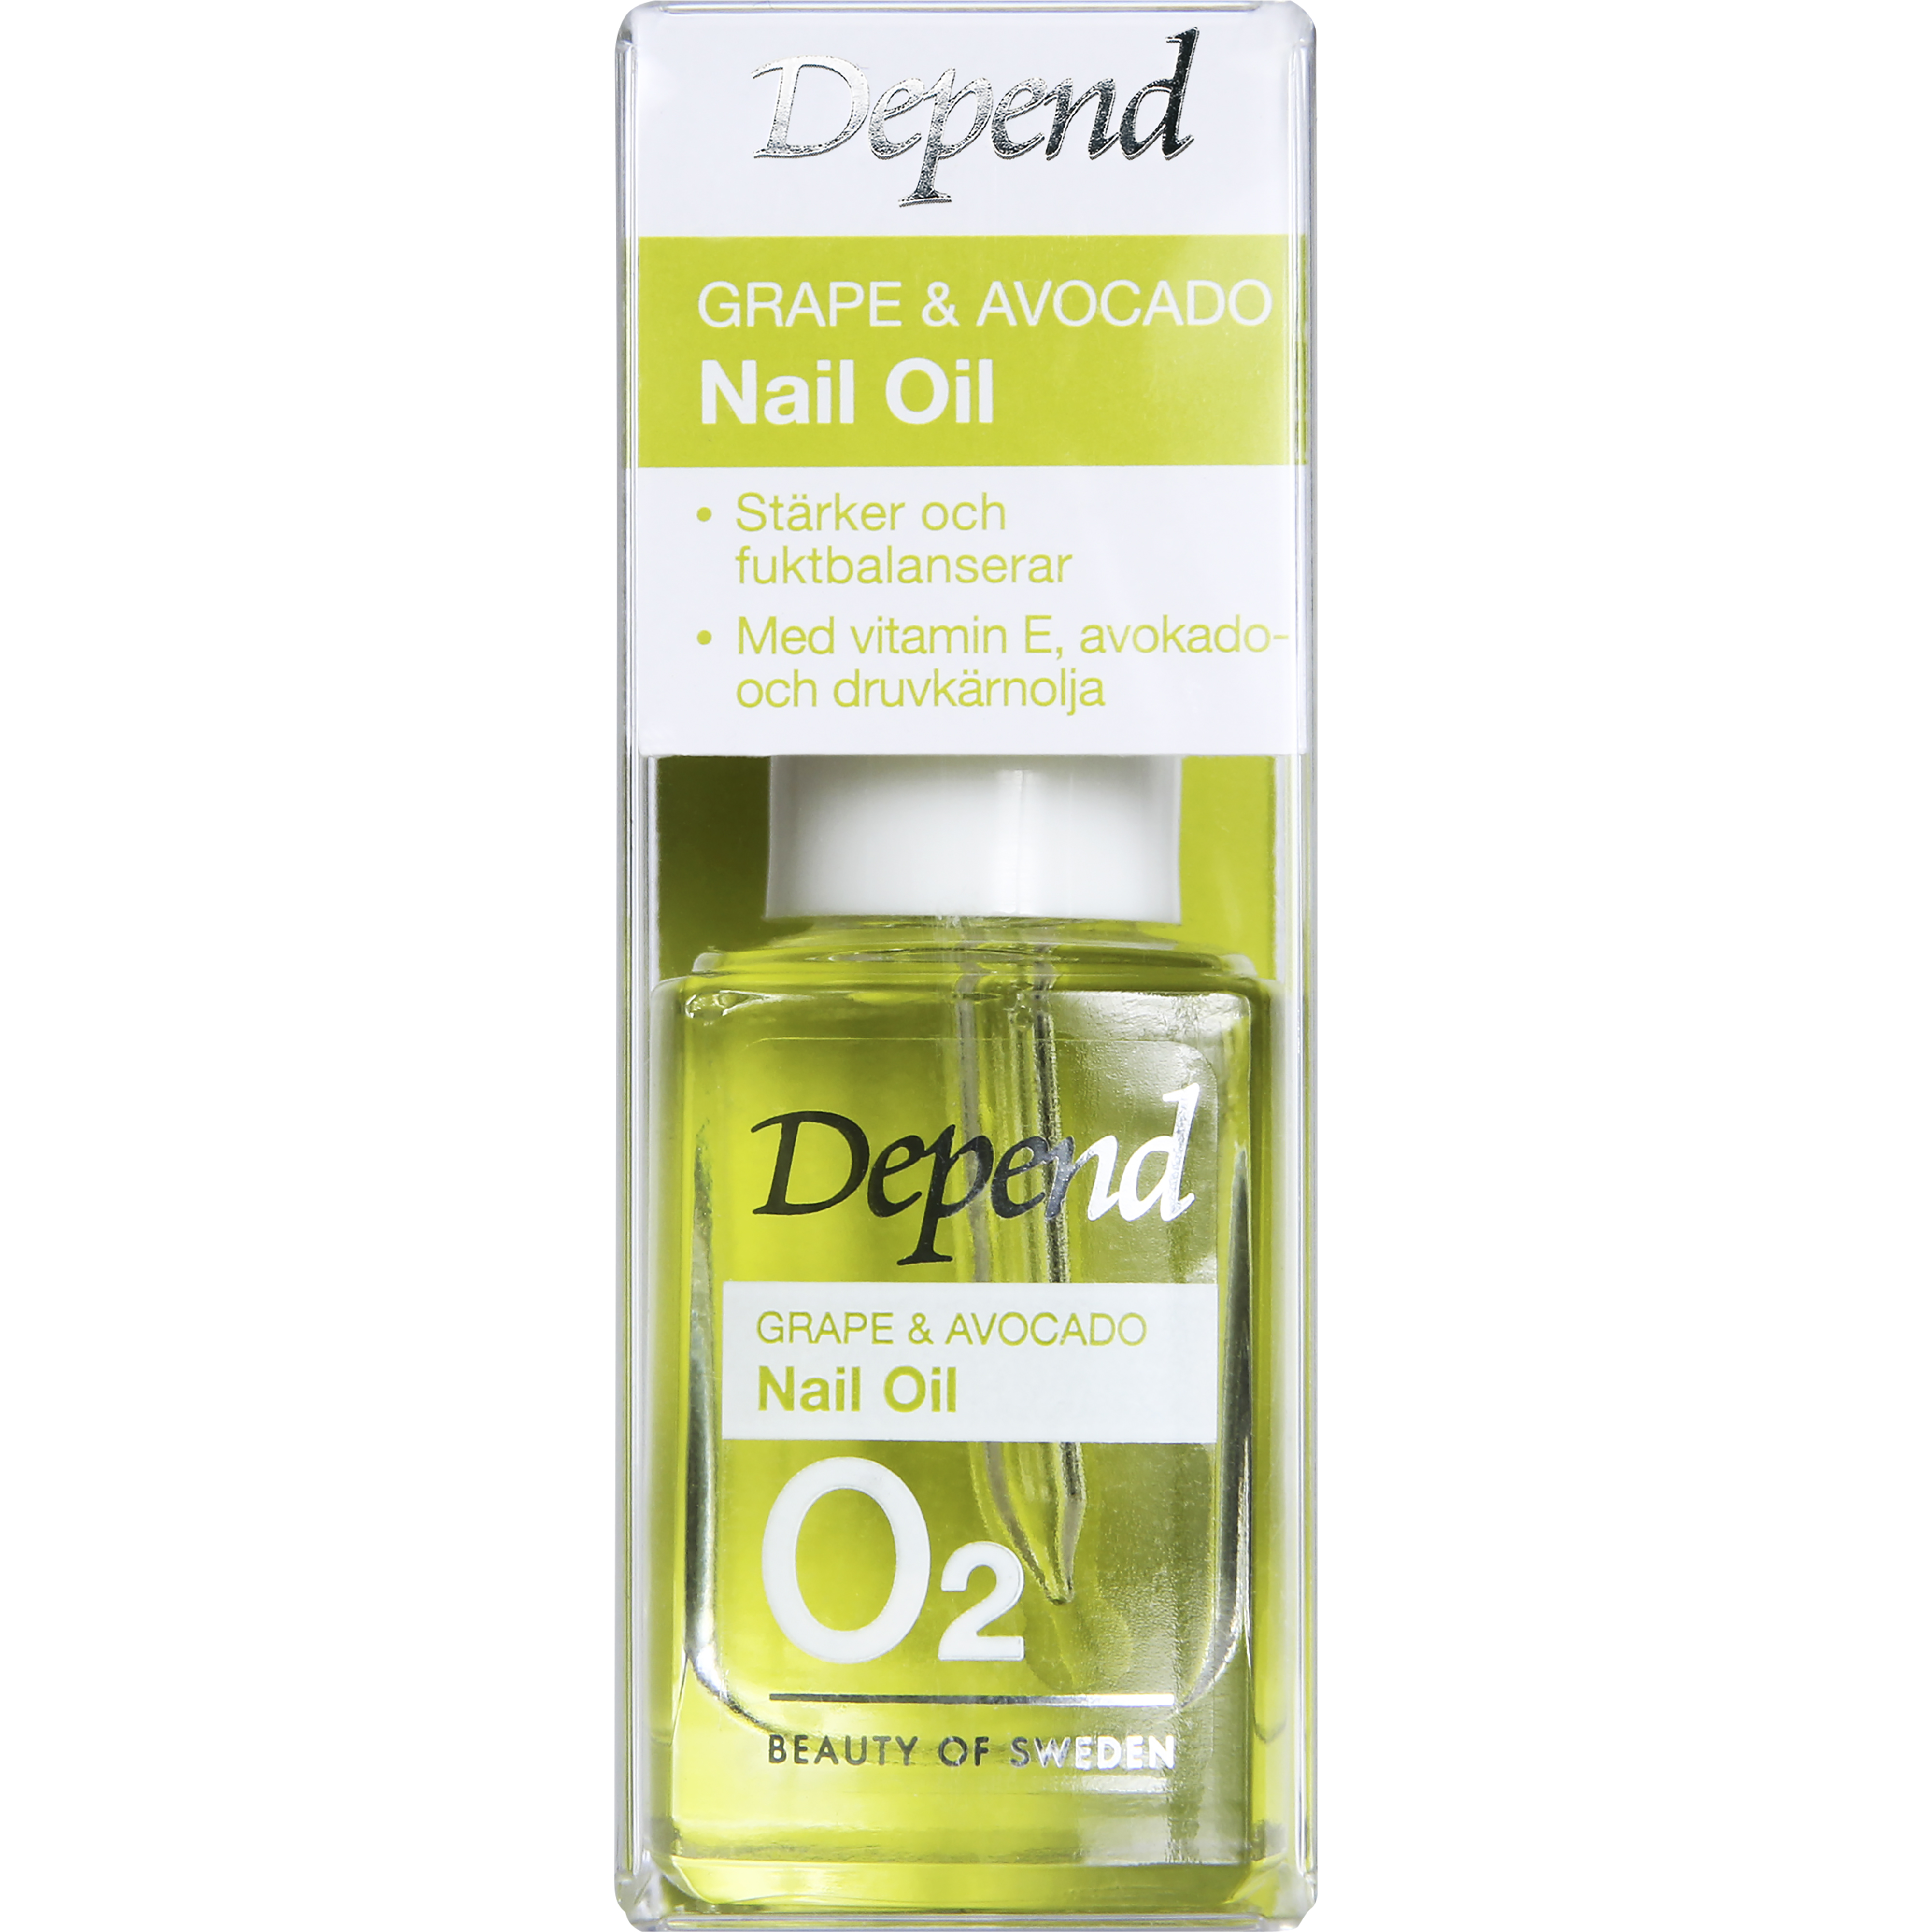 Grape & Avocado Nail Oil